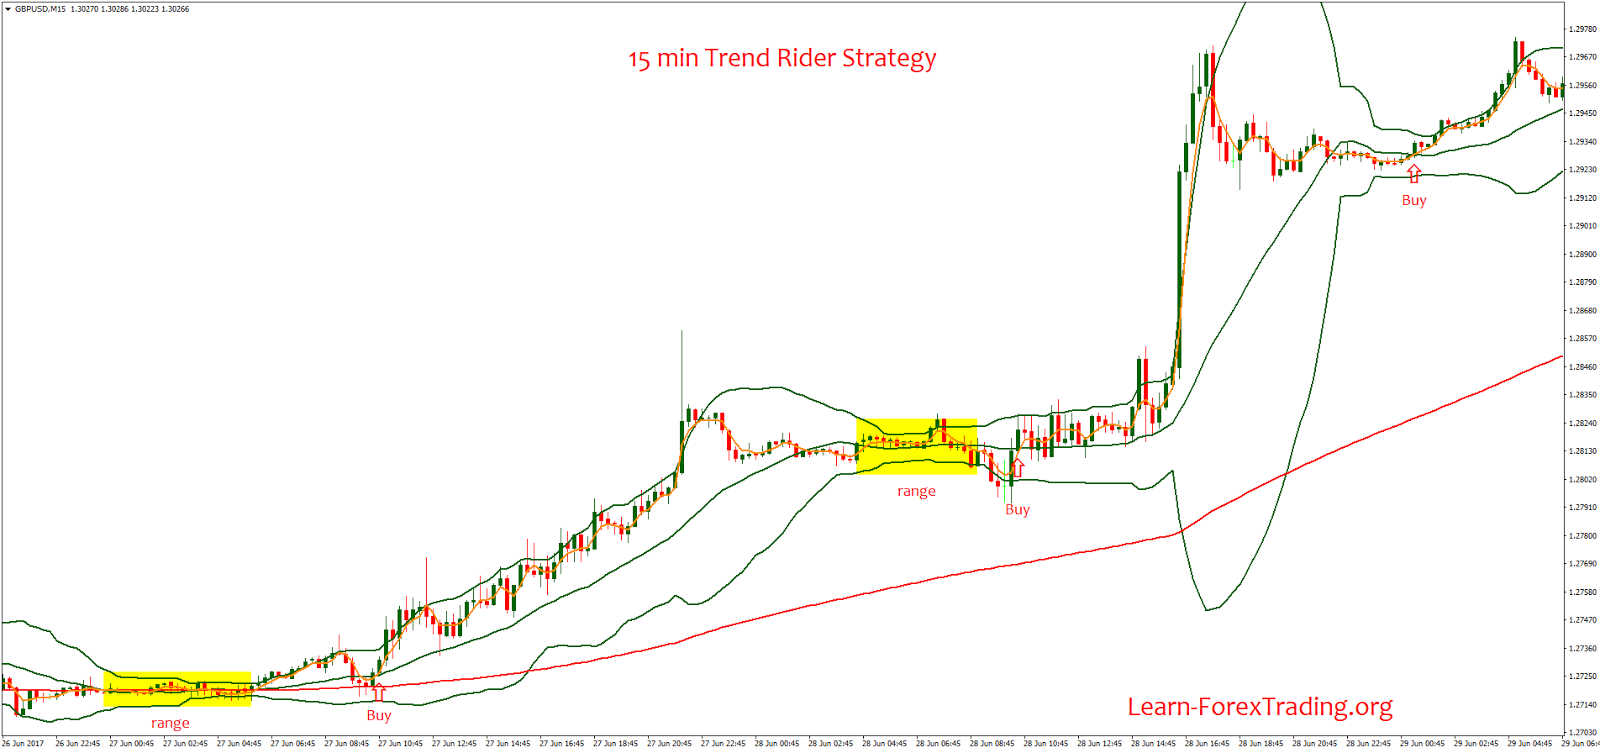 Trend rider forex strategy